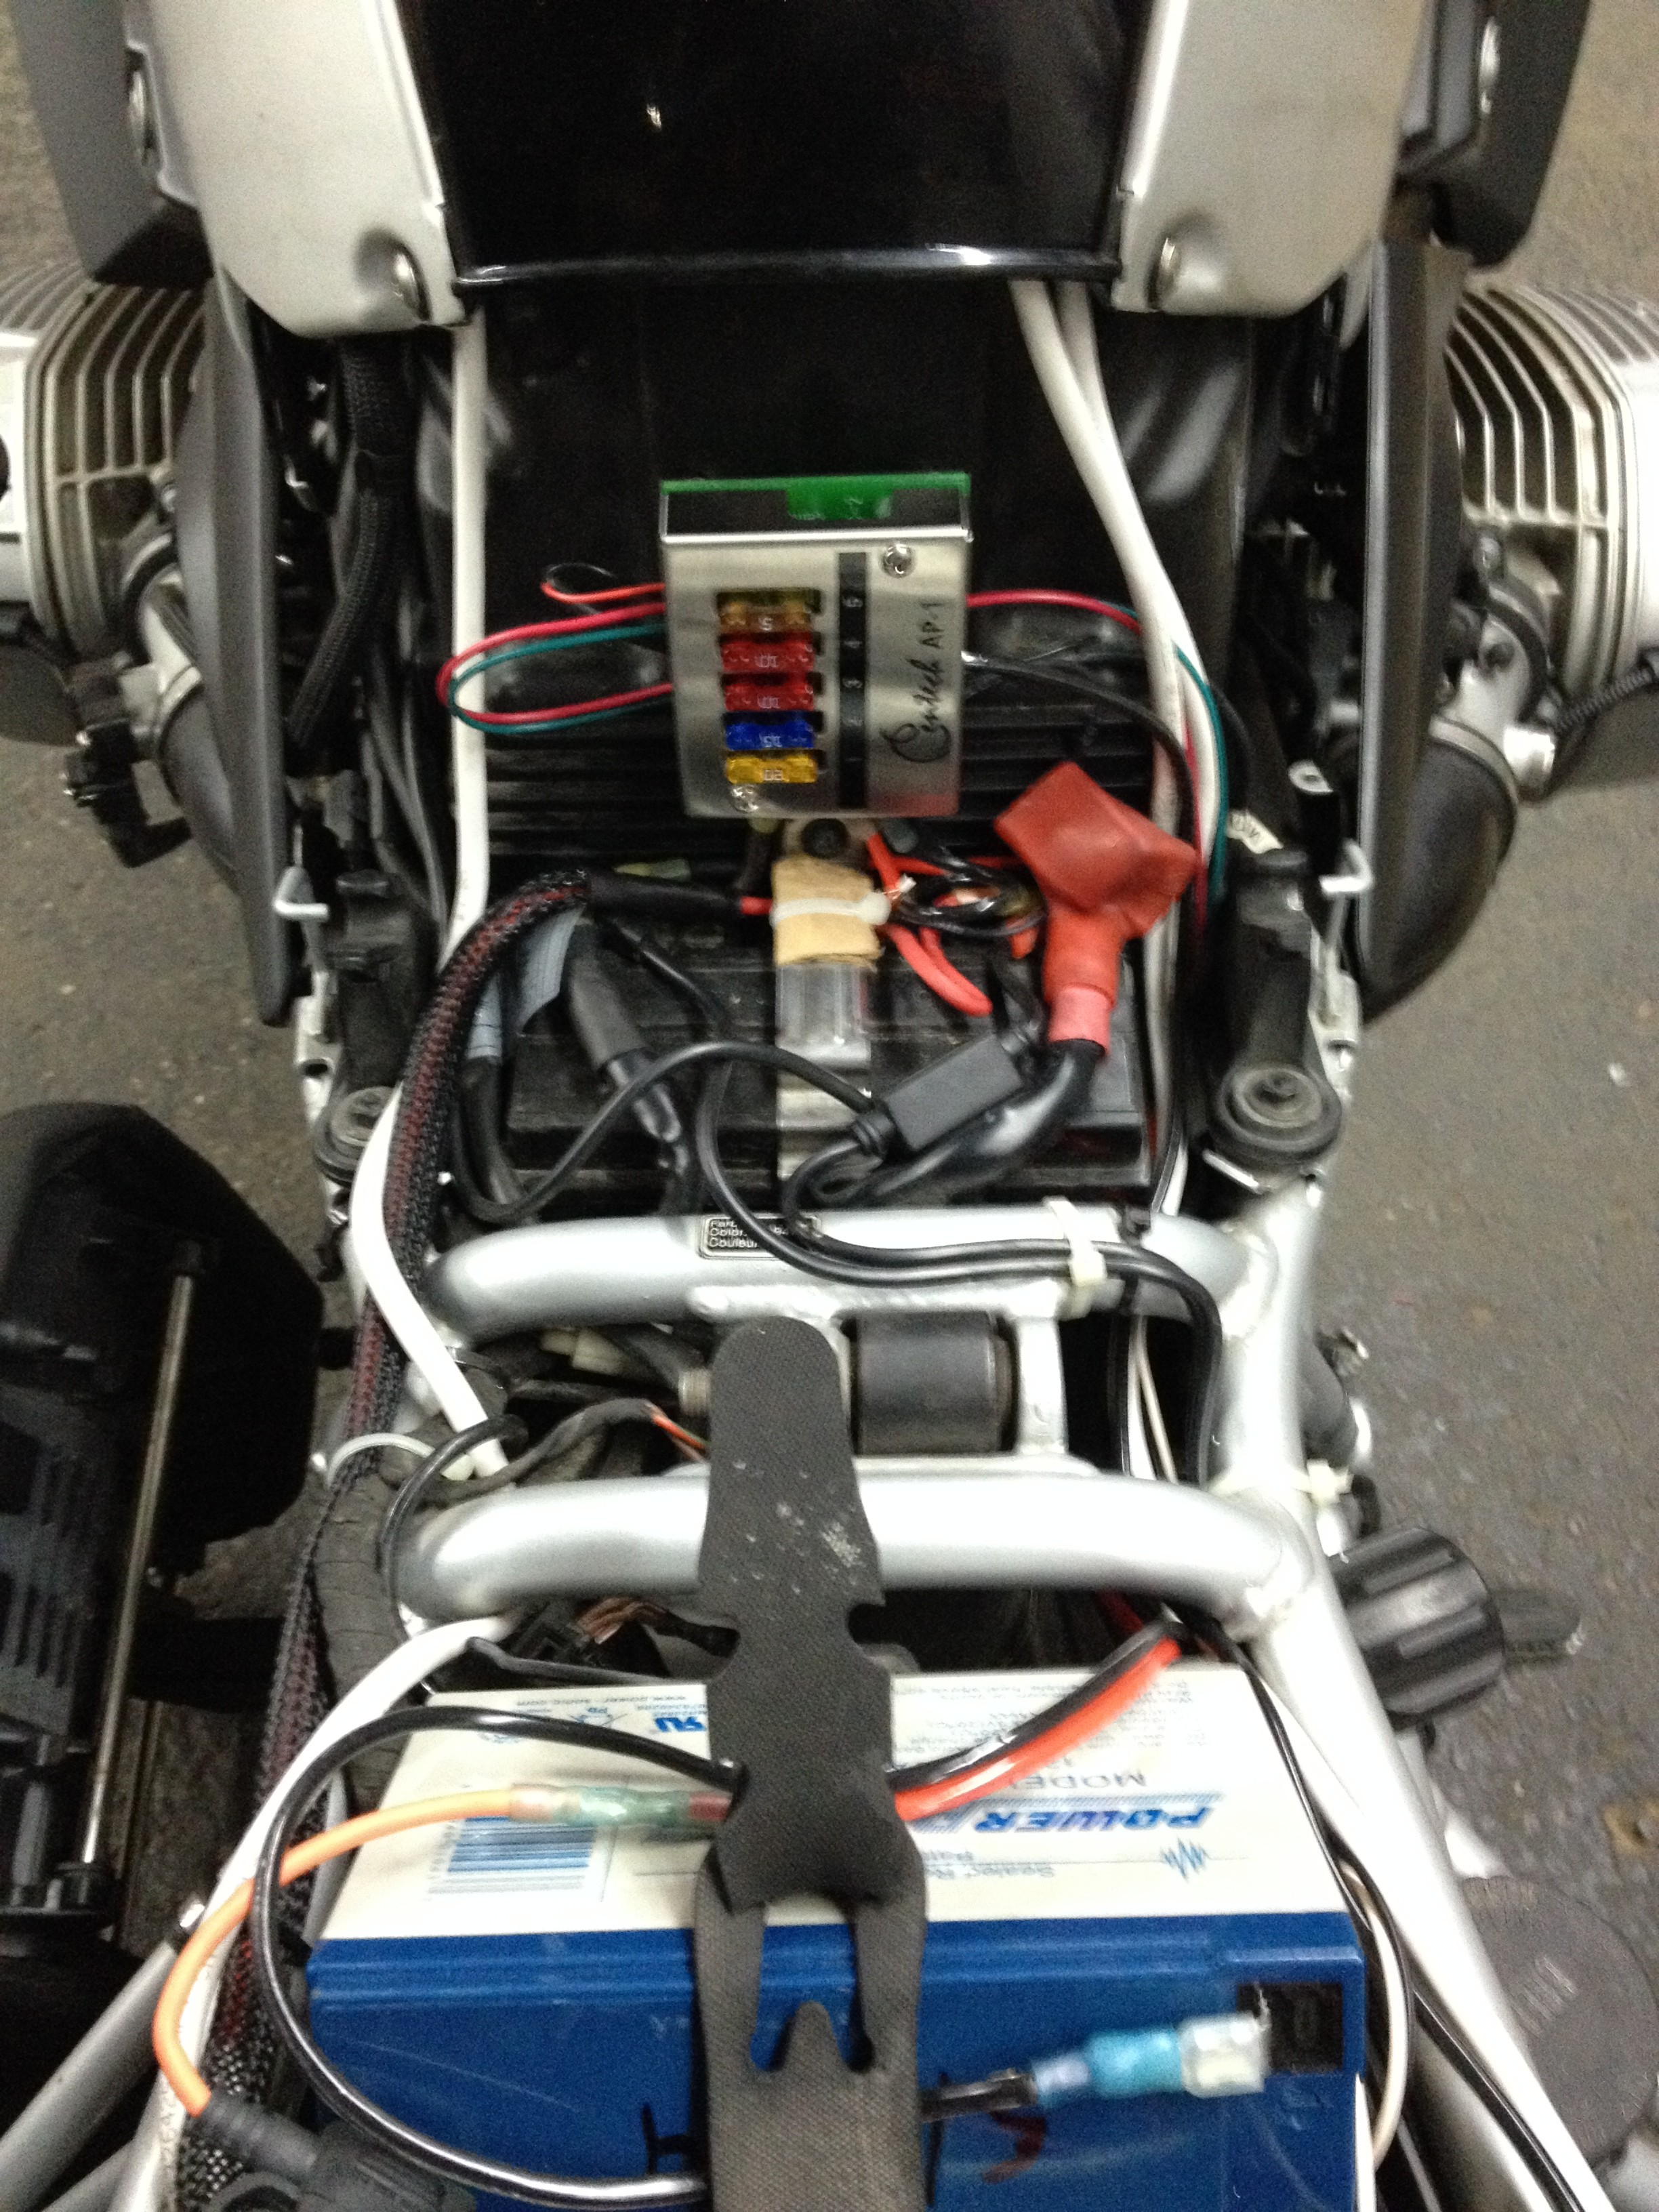 Tremendous Bmw K1200S Fuse Box Wiring Diagram Wiring Cloud Brecesaoduqqnet